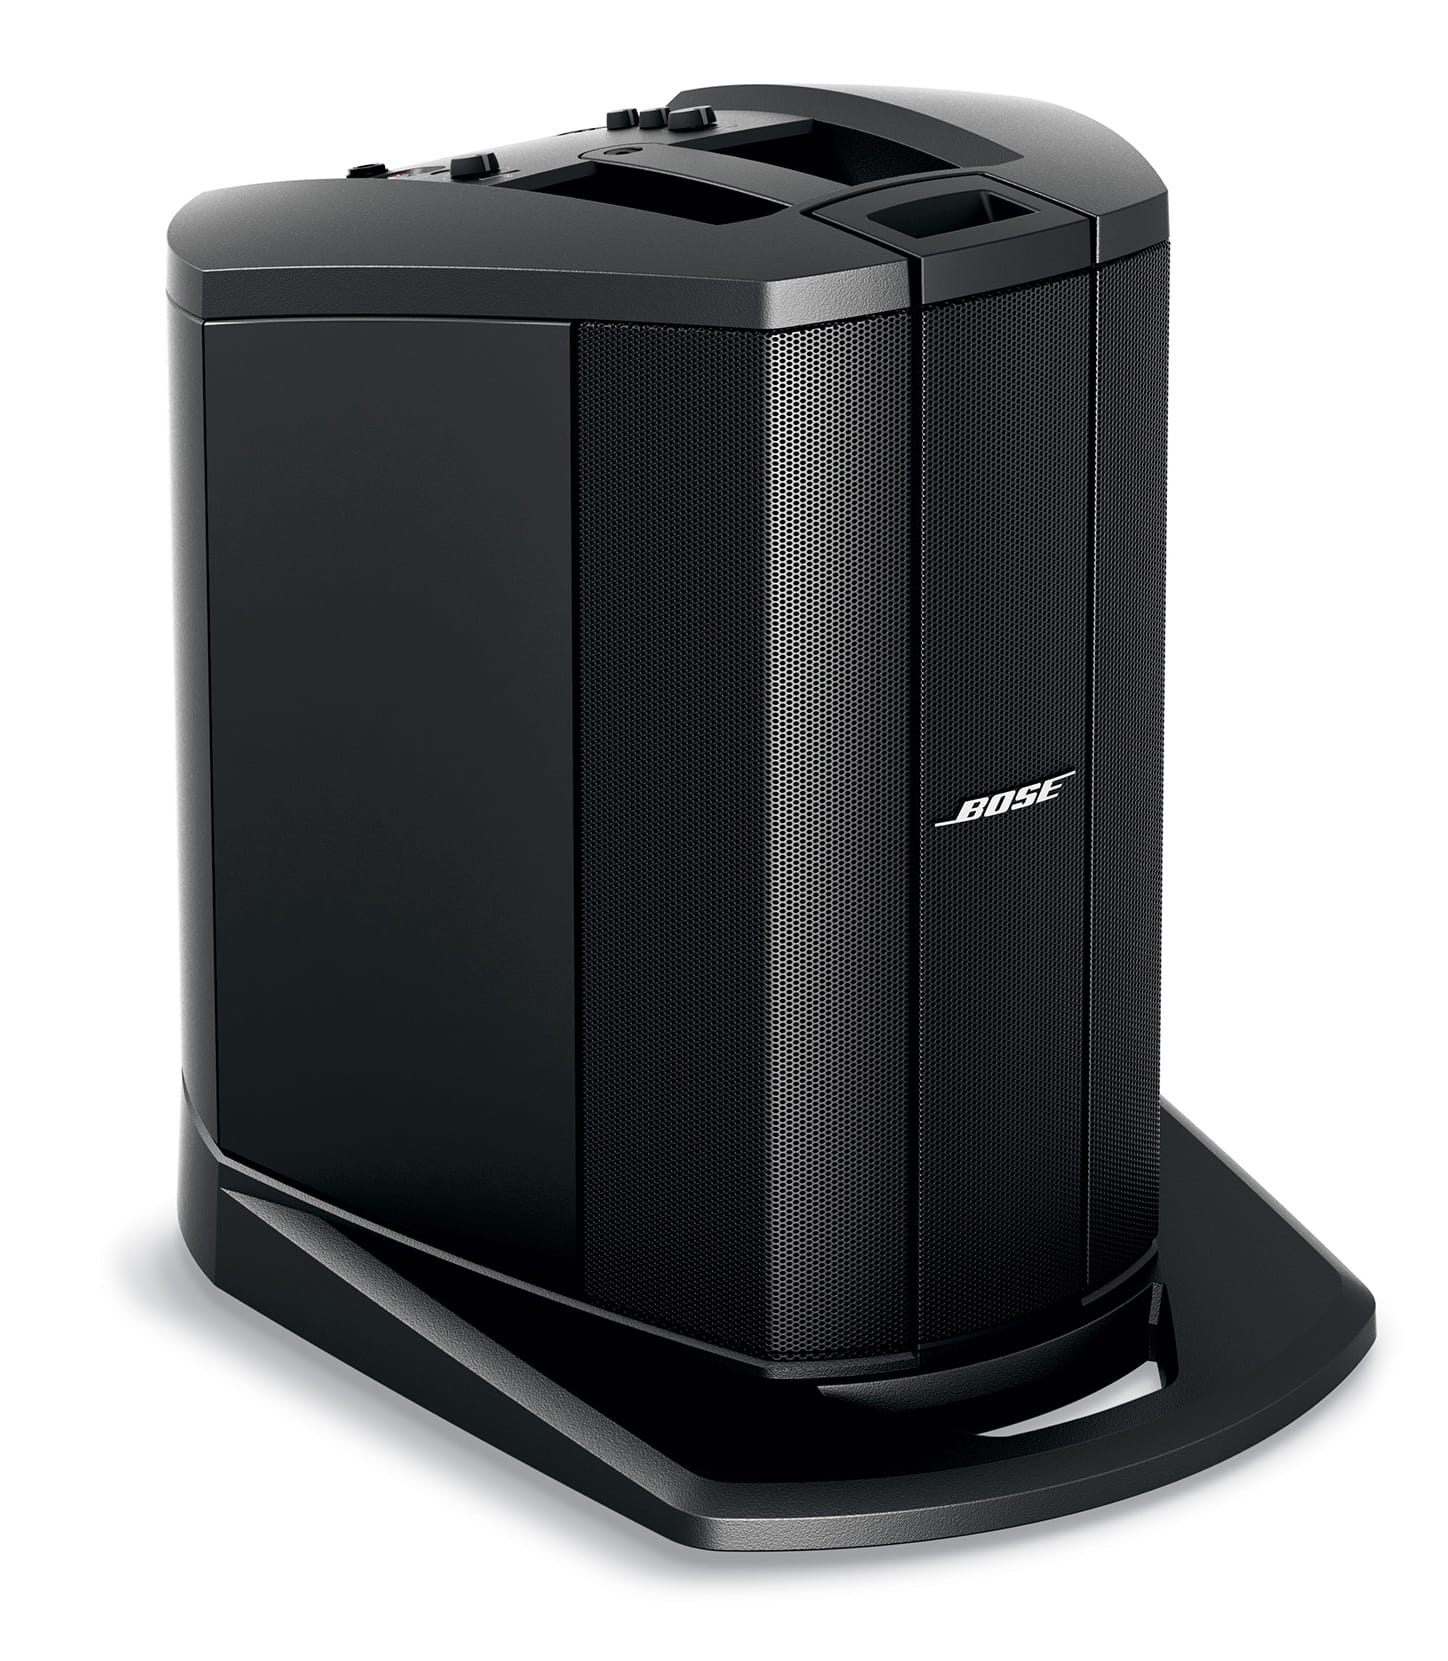 Buy Bose Professional L1 Compact power stand 220 240V black UK Melody House